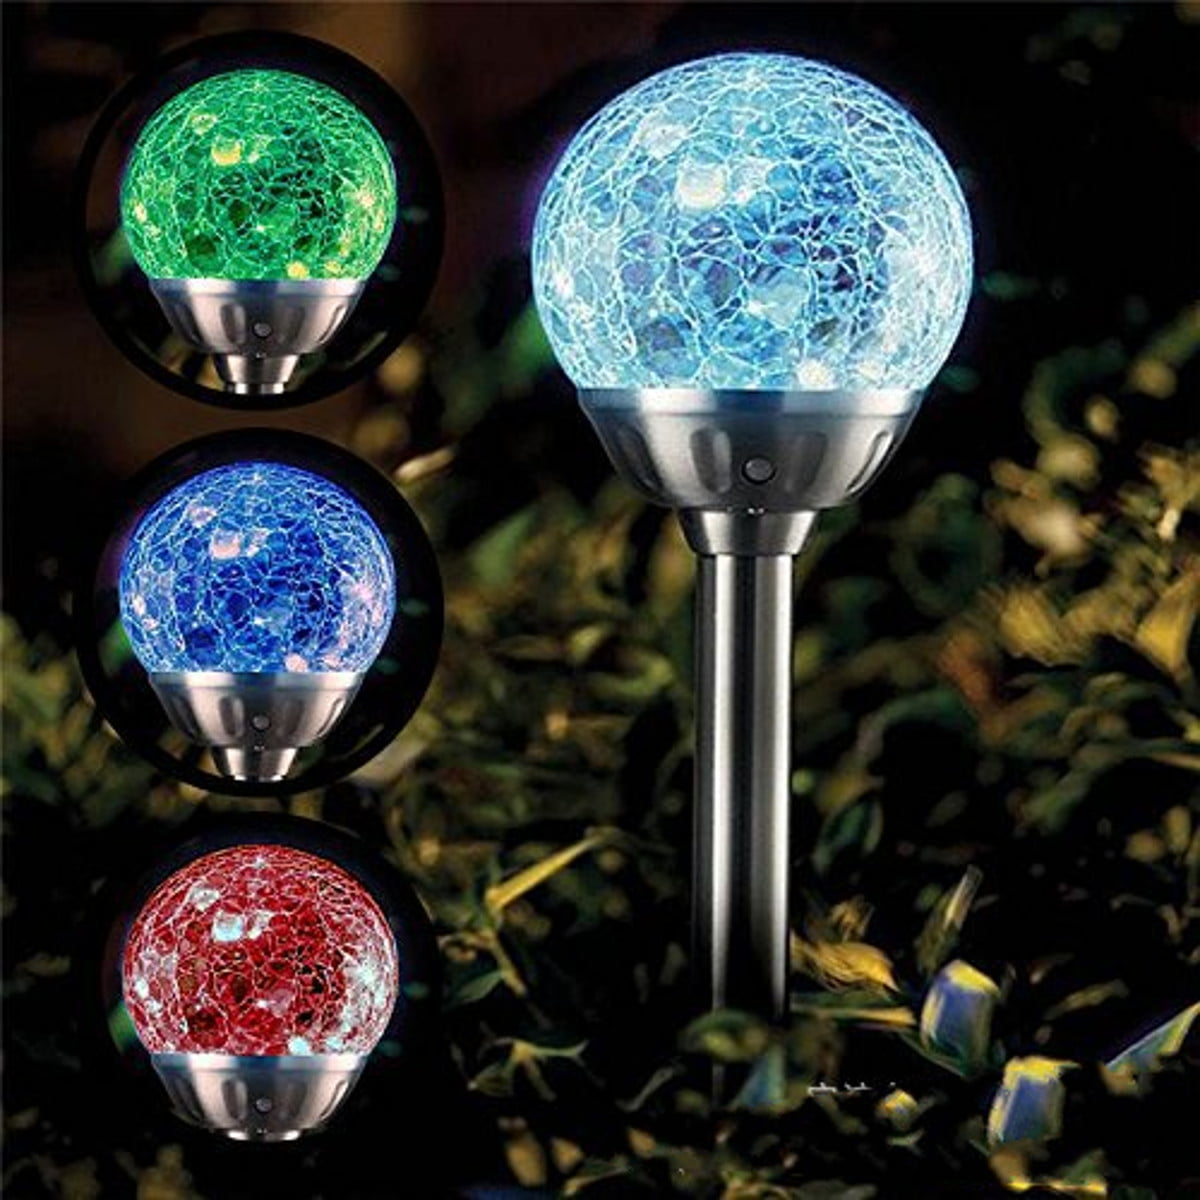 2 Colour Changing Led Stainless Steel Solar Stake Lights: 1pcs Solar Lights Outdoor, Cracked Glass Ball LED Garden